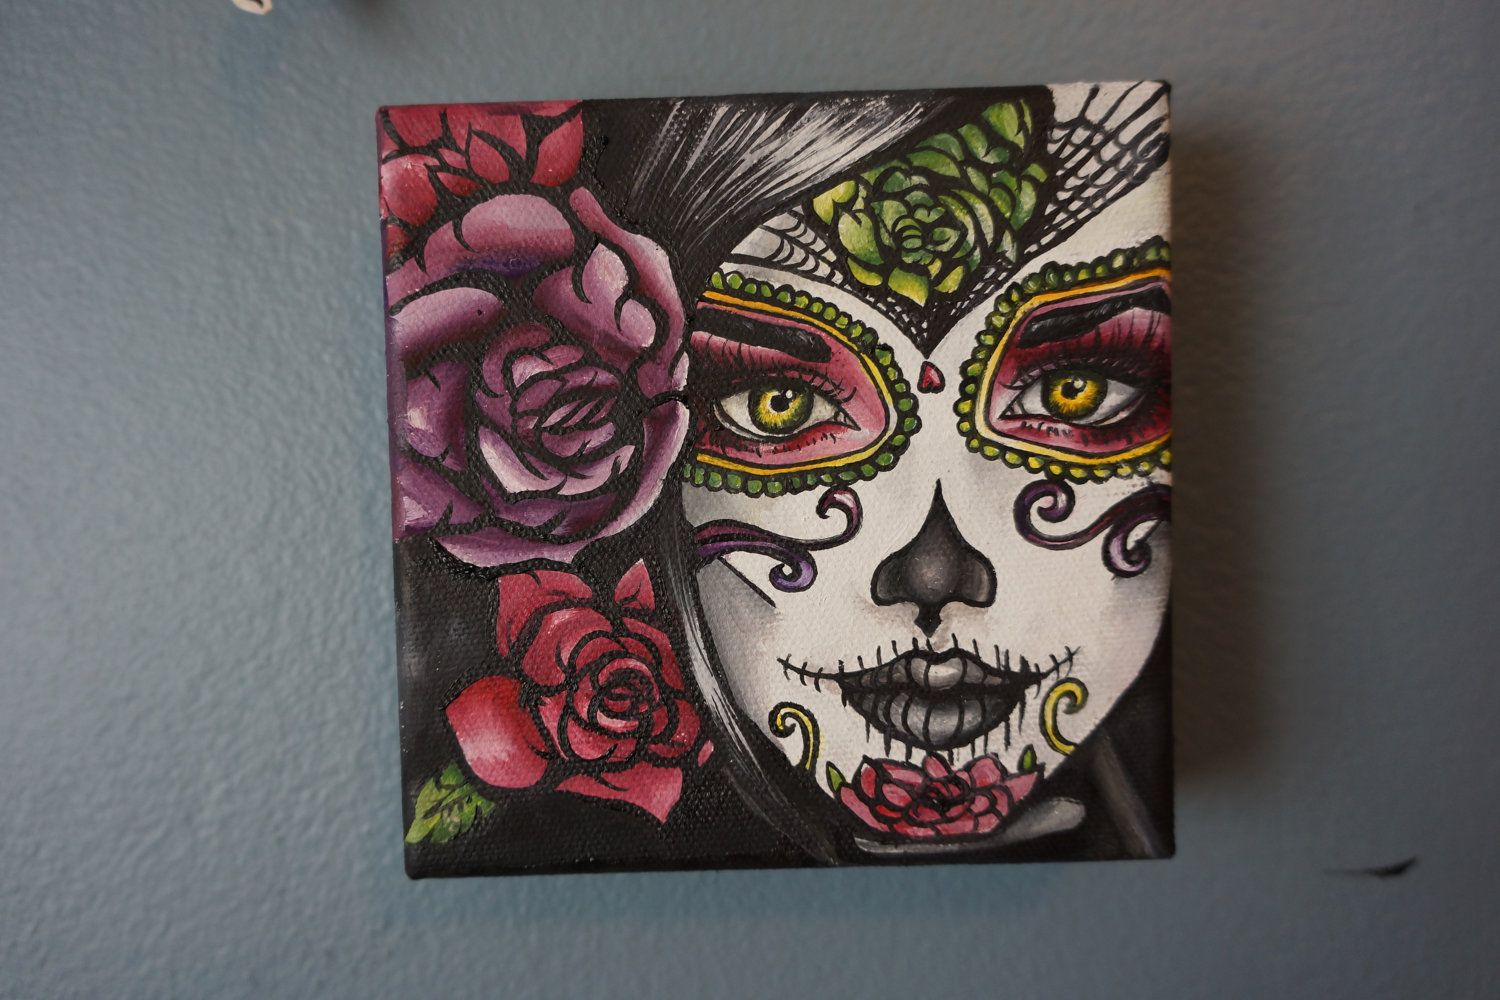 Genial Reserved  Day Of The Dead Dia De Los Muertos Painting  Original Oil  Painting 5 X 5 Big Eye Art Lowbrow Tattoo Home Decor Art